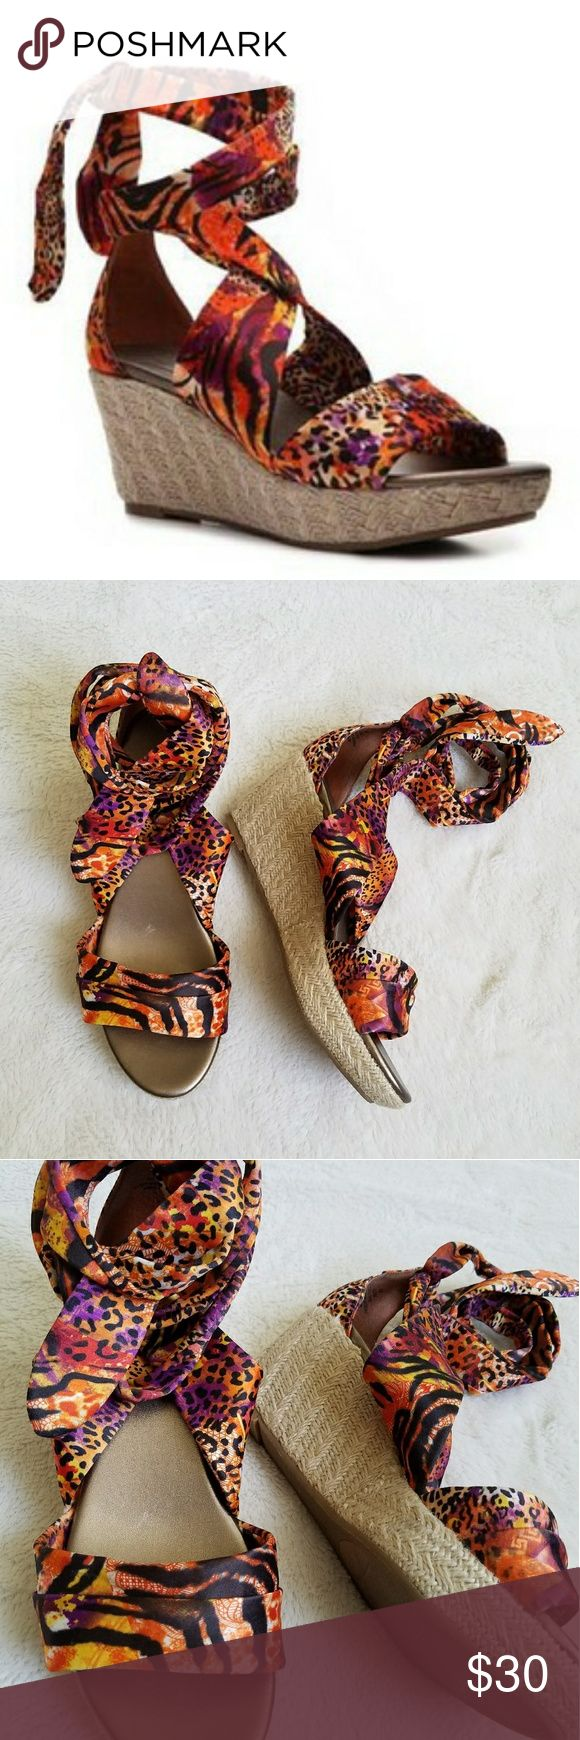 "🆕IMPO Satin Tie Up Animal Print Espadrille Wedges EUC pair of IMPO orange and purple animal print Espadrille wedges. Straps are satin. The heel measures 3 3/4"". The heel of the right shoe has some discoloration, as shown in last photo, but it's not too noticeable. These shoes have been worn once! Shoes Wedges"